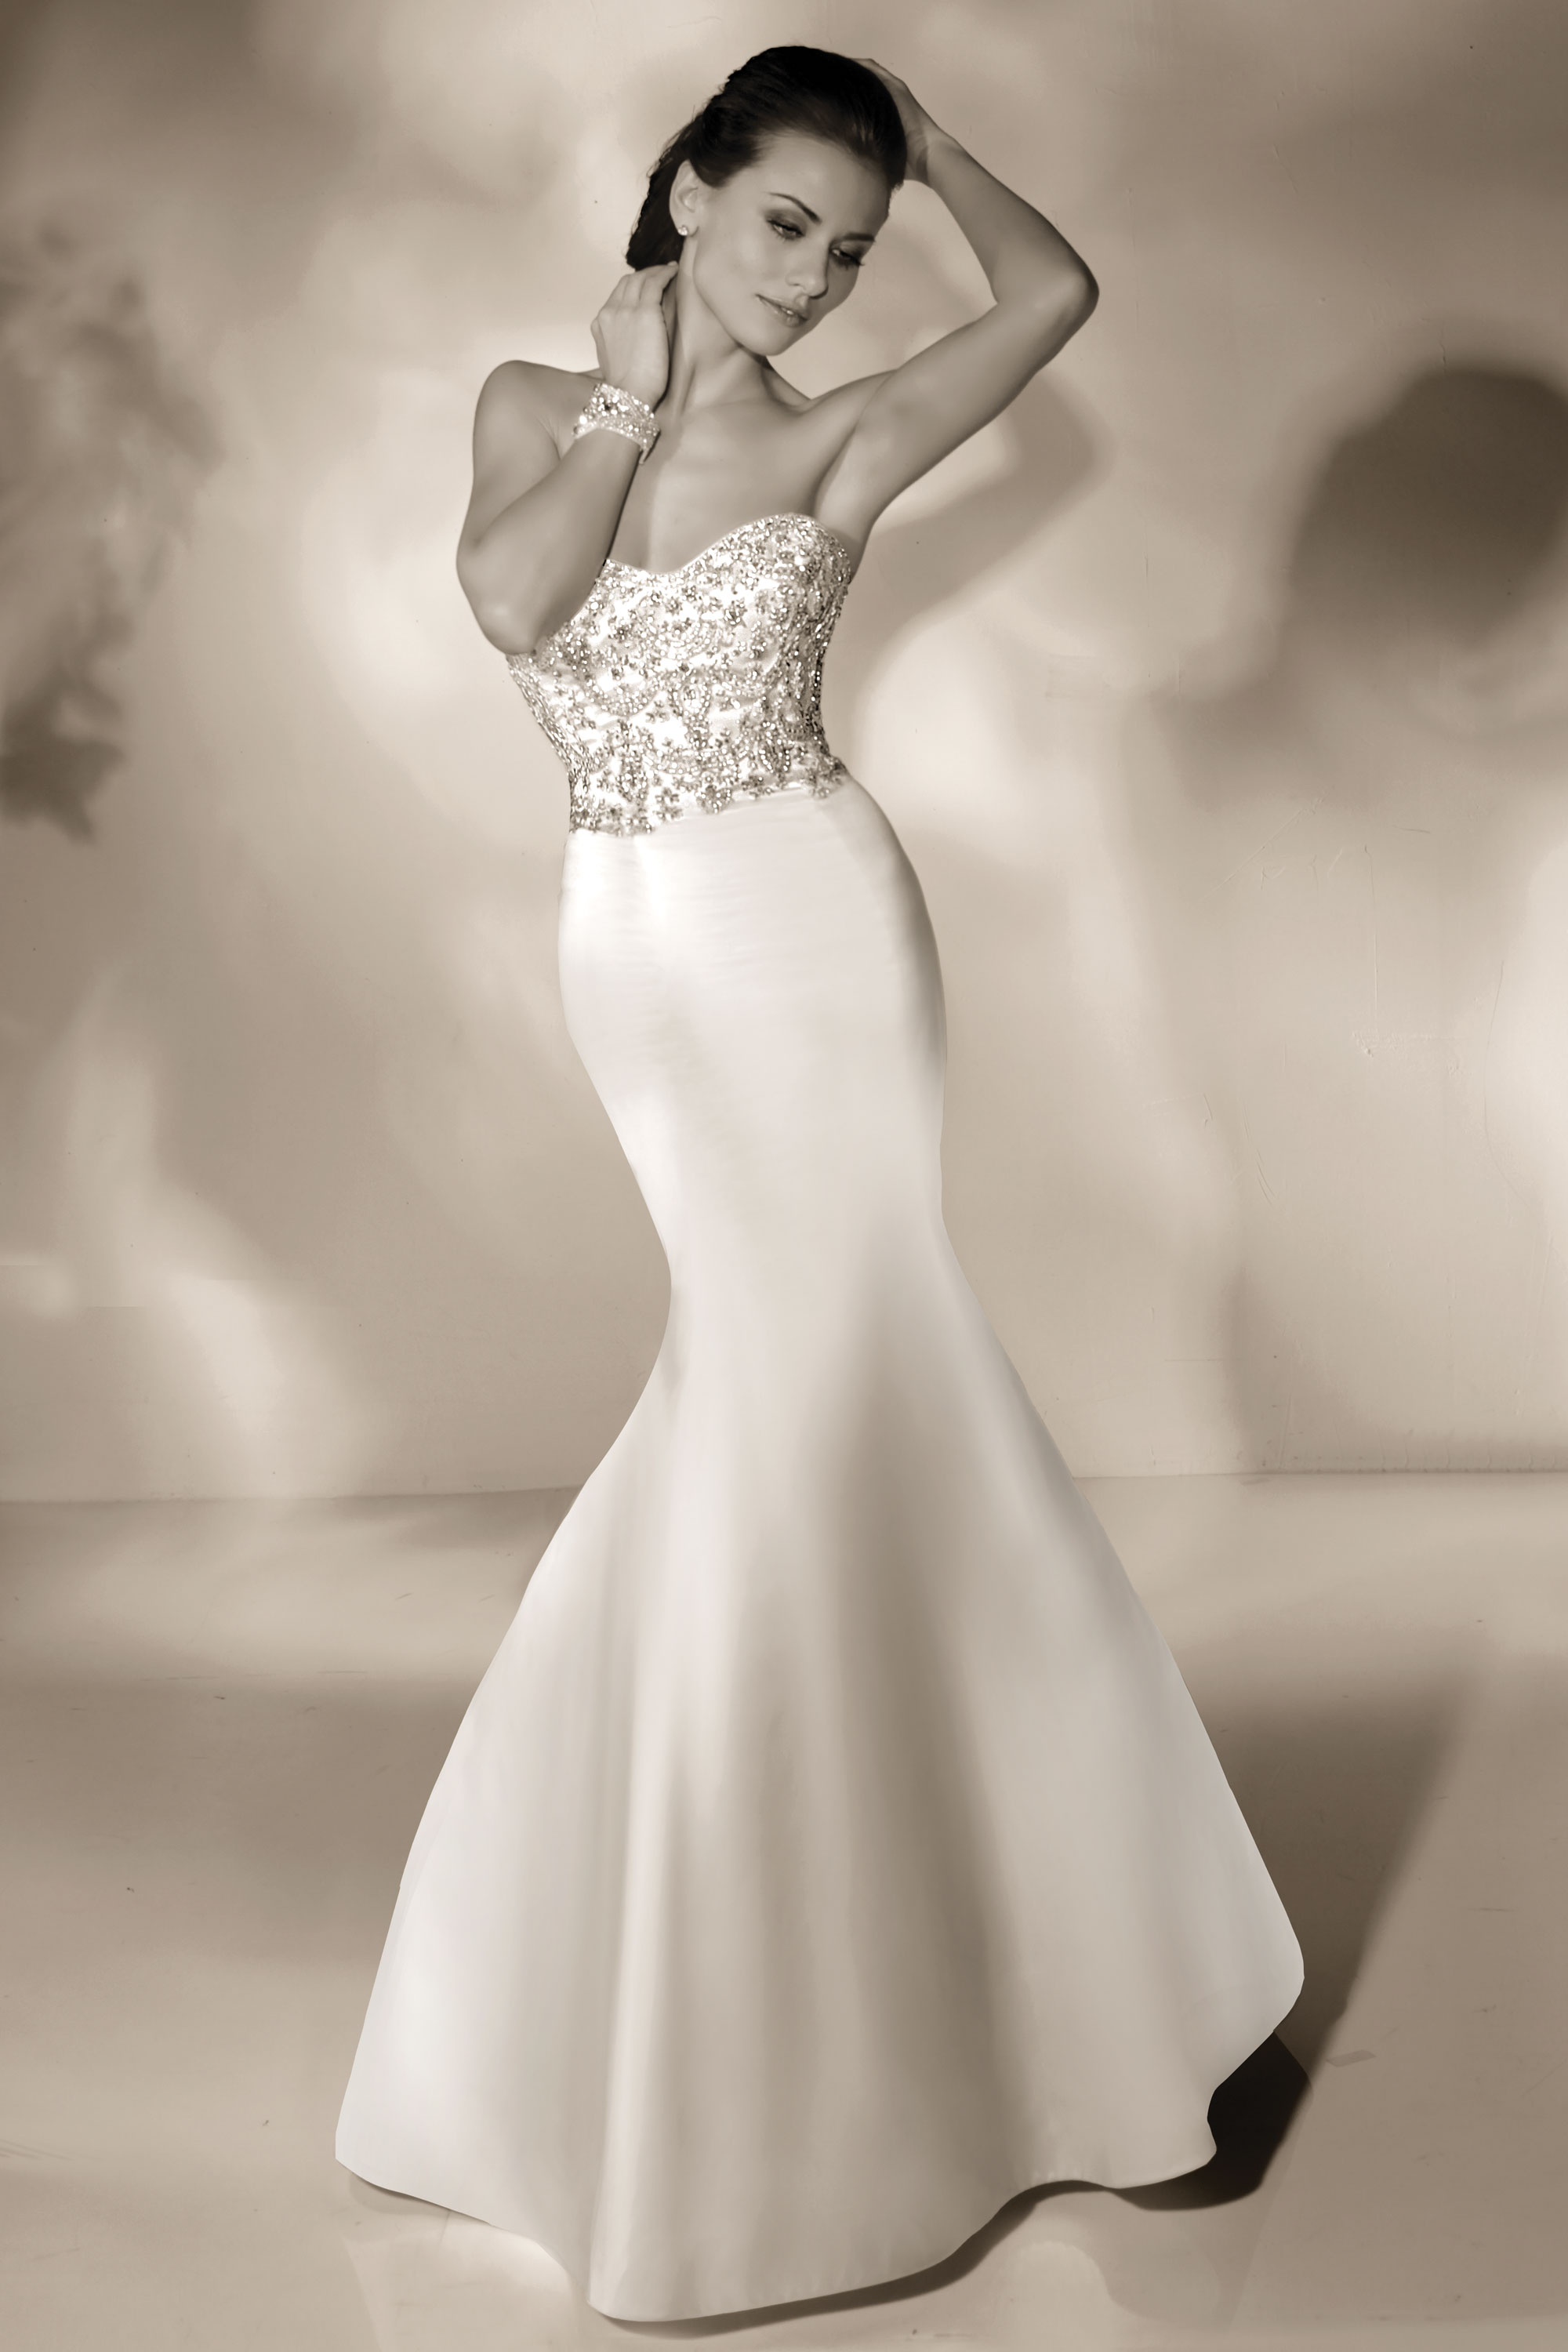 cristiano-lucci-wedding-dresses-20-01052014